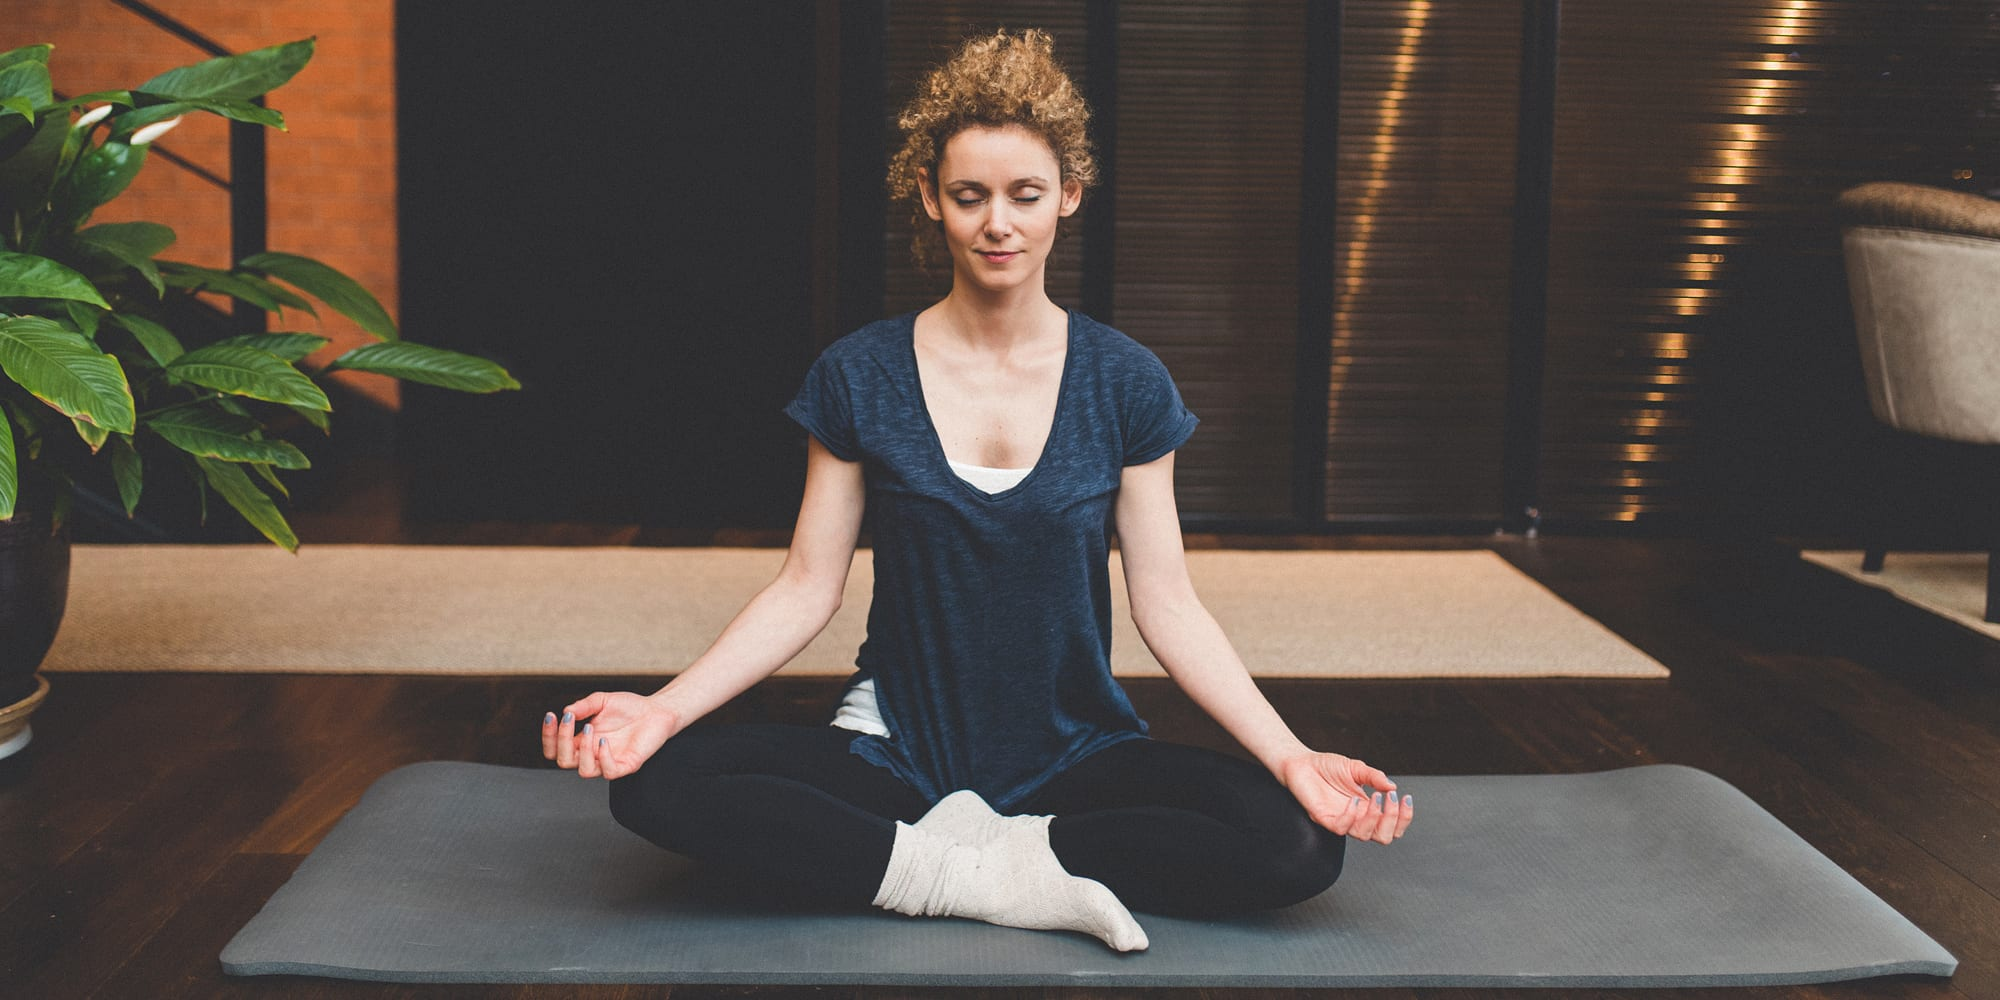 Stressed? Find Your Zen With These 5 Meditation Apps